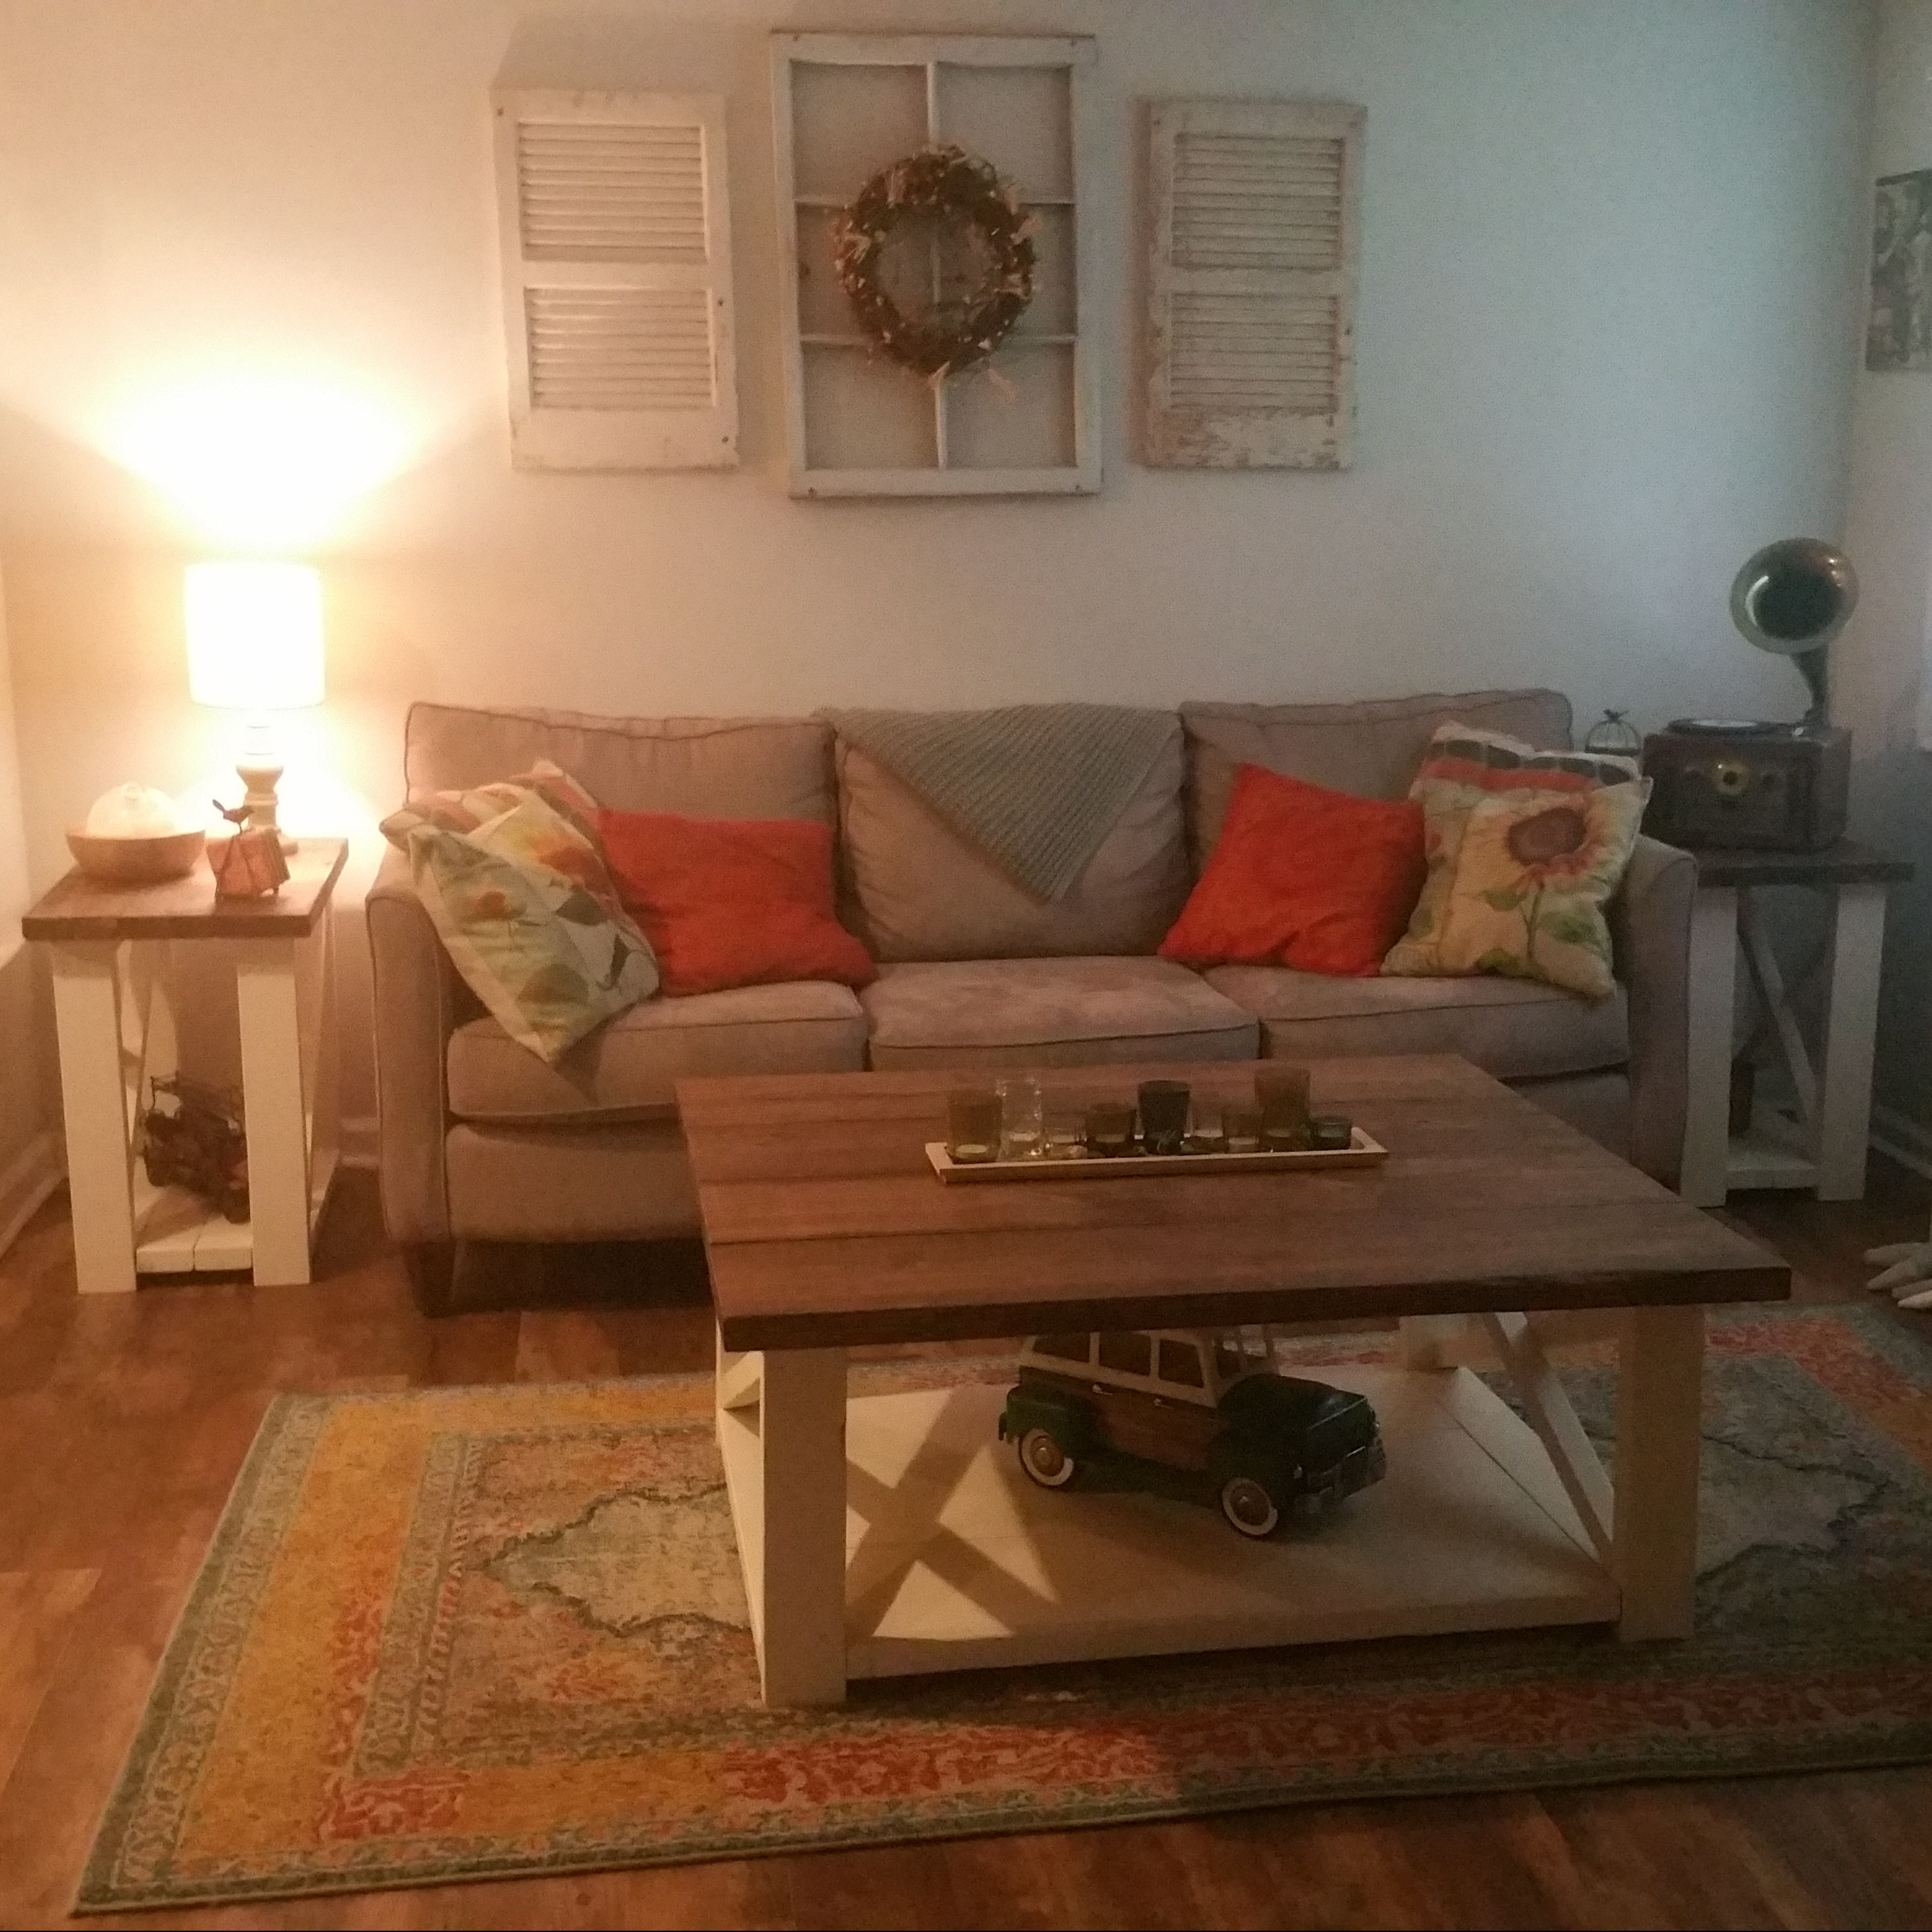 Distressed Farmhouse Living Room: Rustic Living Room Set, Large Farmhouse Coffee Table With